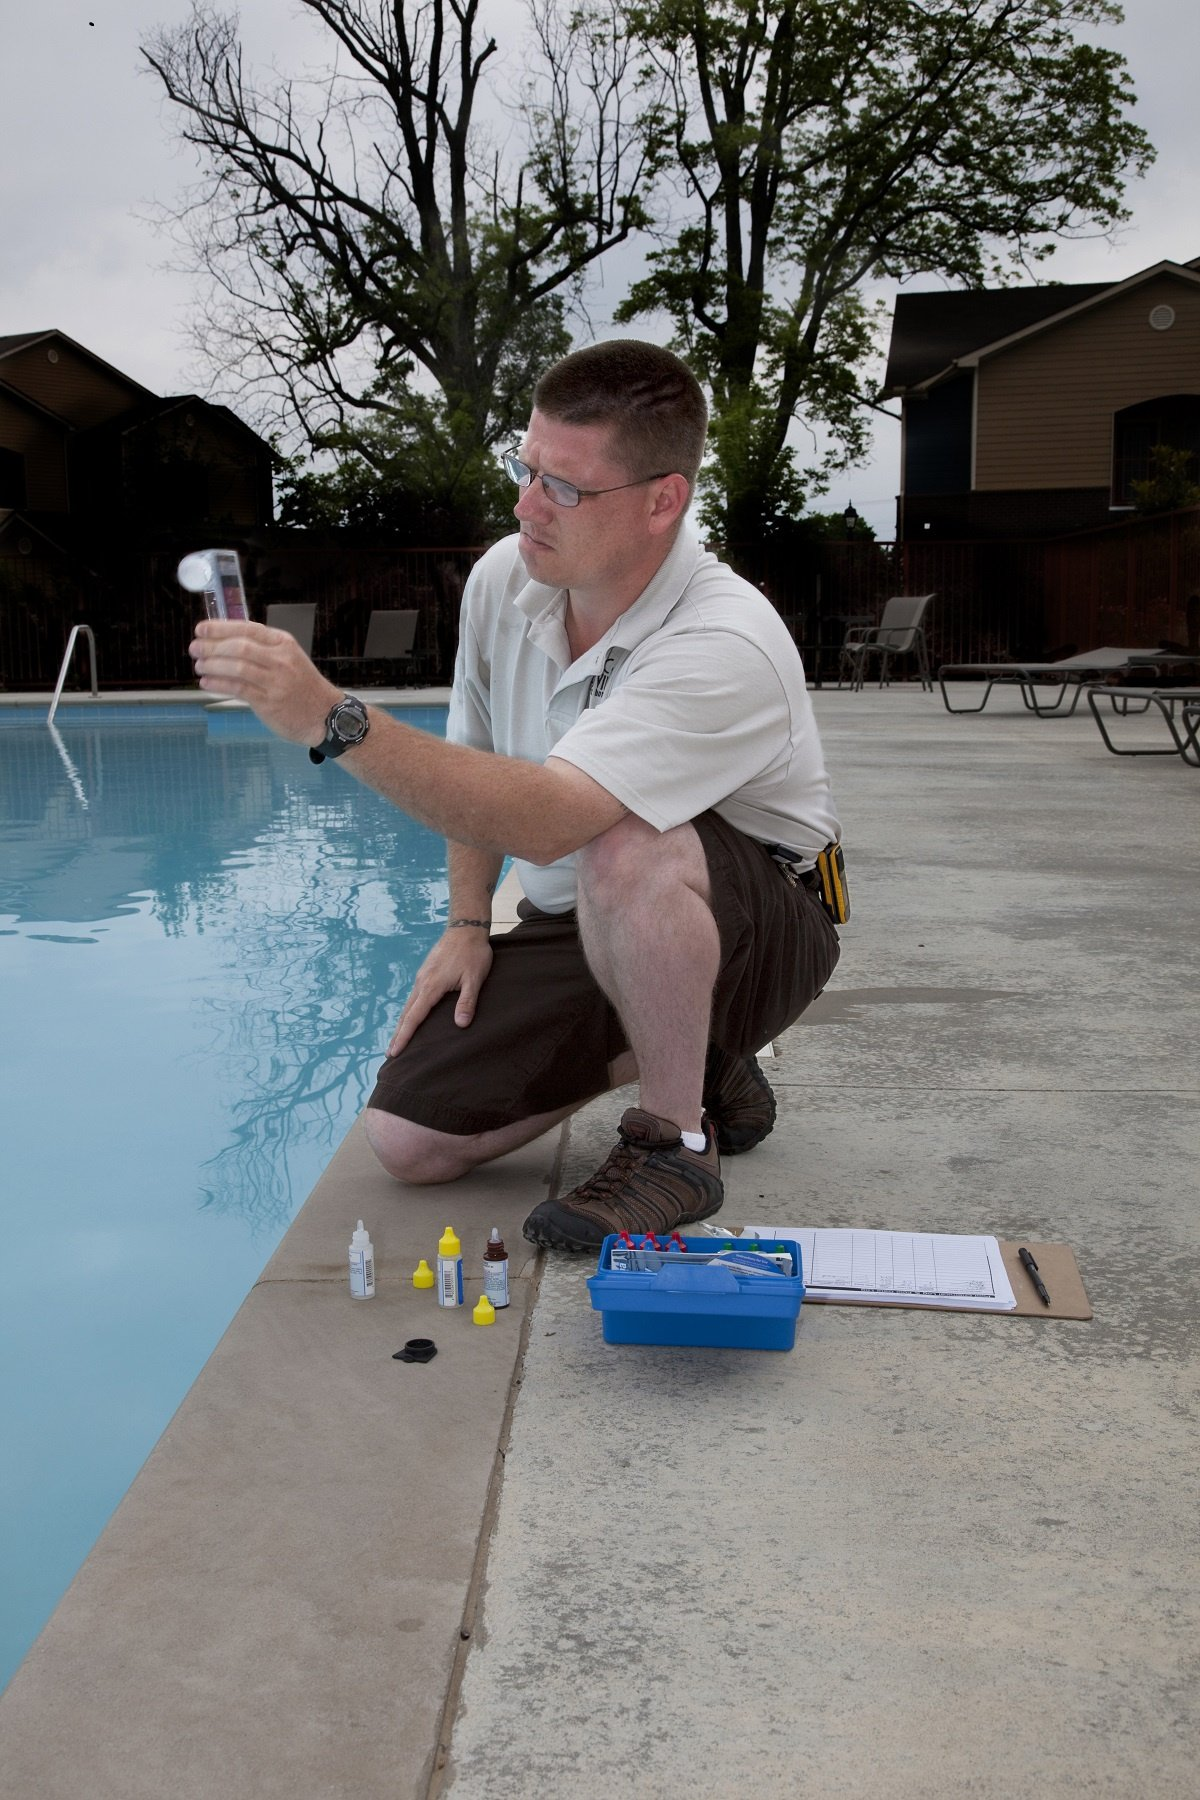 Test pool chemicals